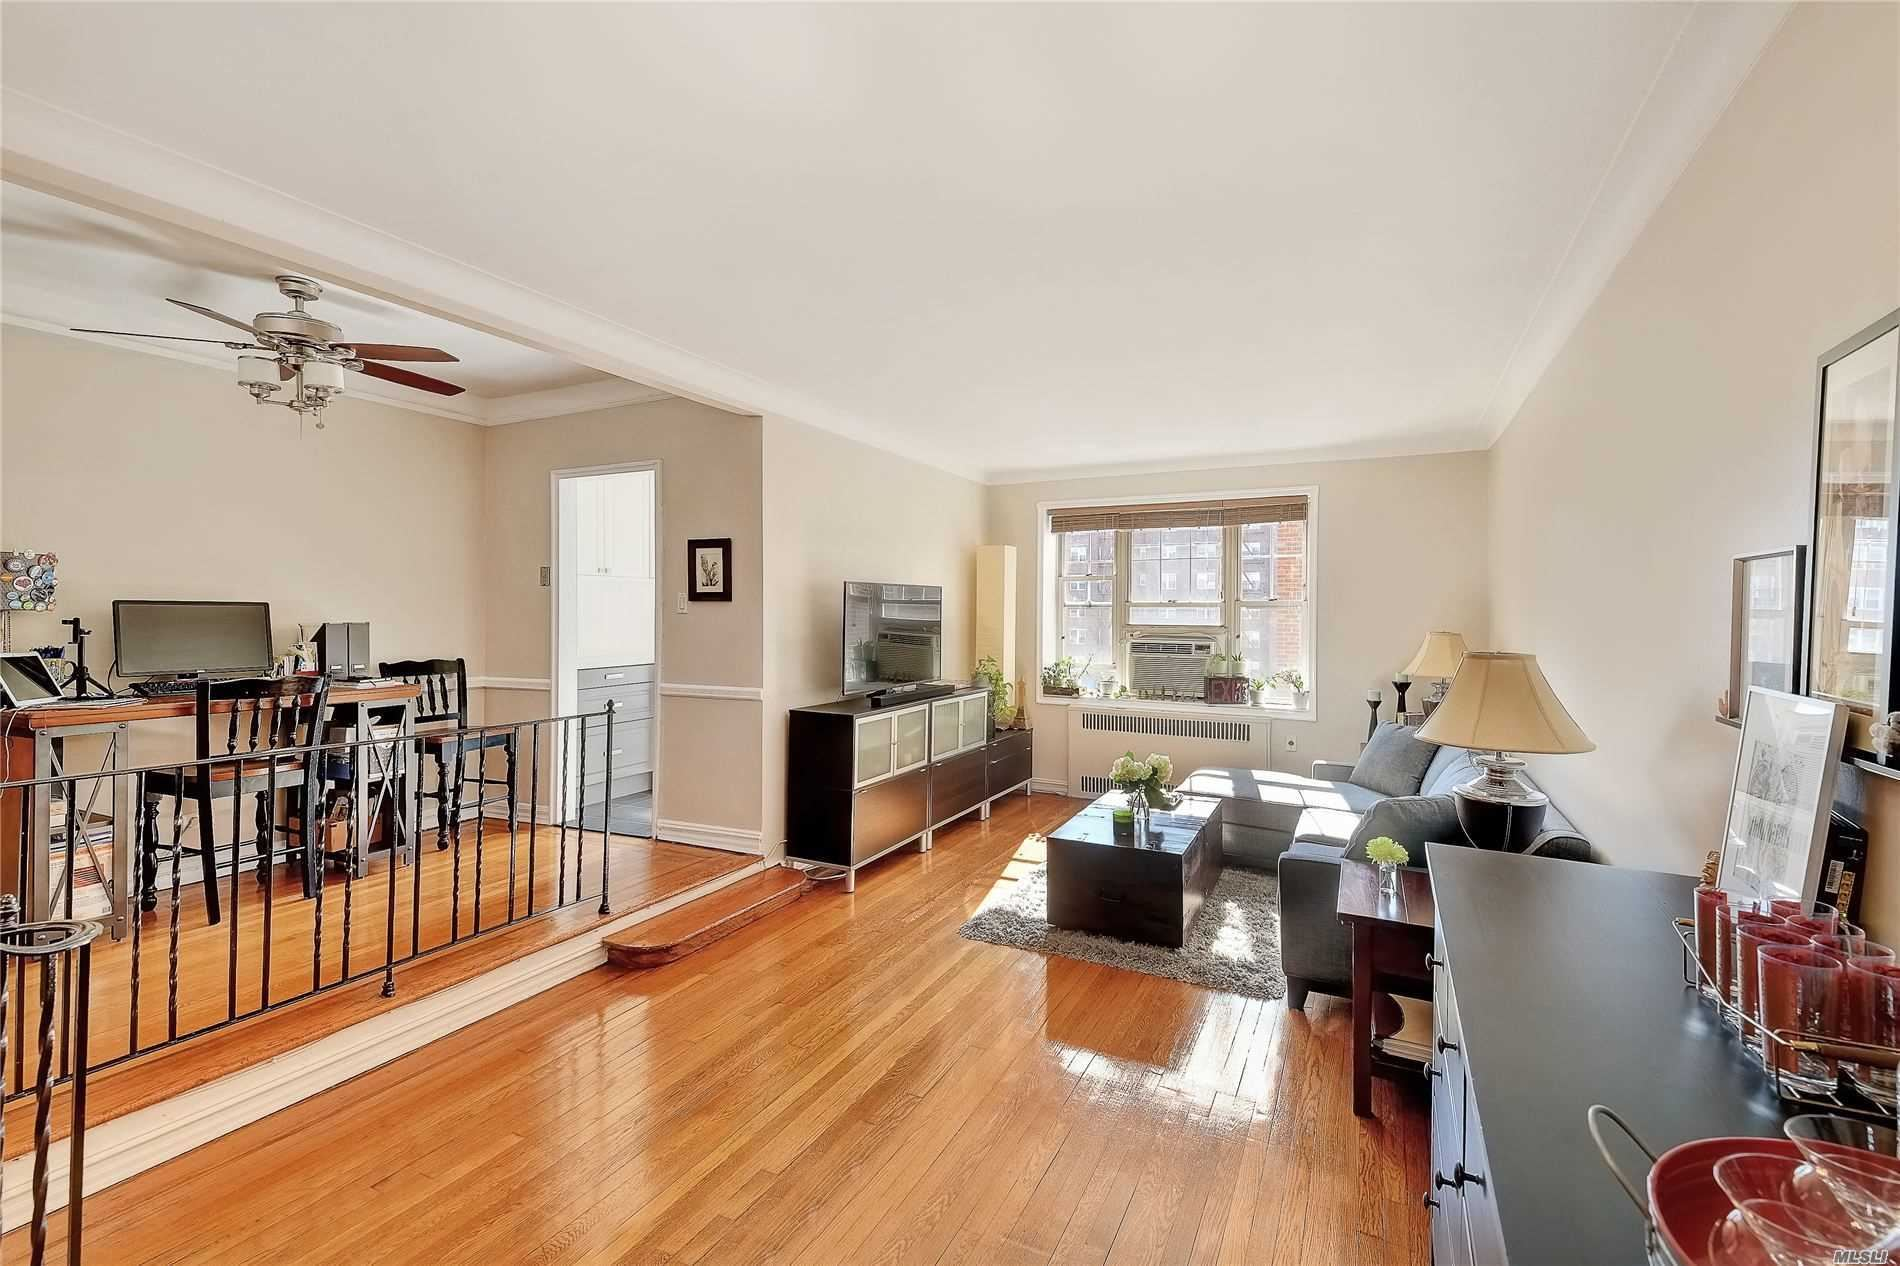 76-36 113th Street #4P, Forest Hills, NY 11375 - MLS#: 3205524